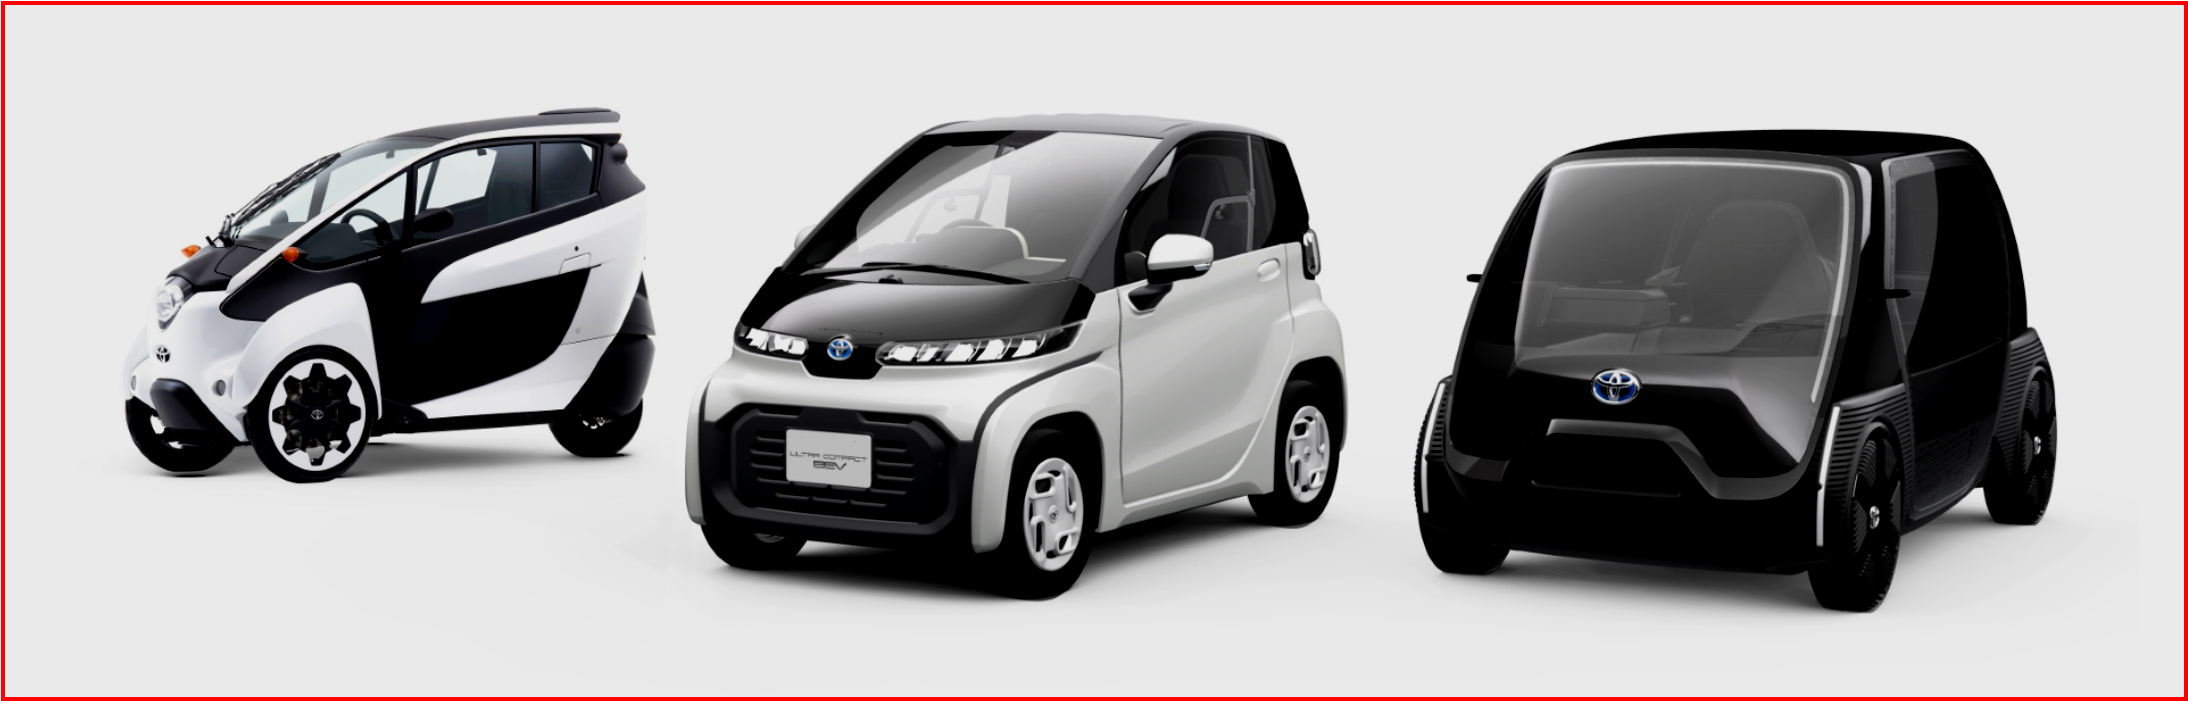 AutoInformed.com on 2019Tokyo Motor Show